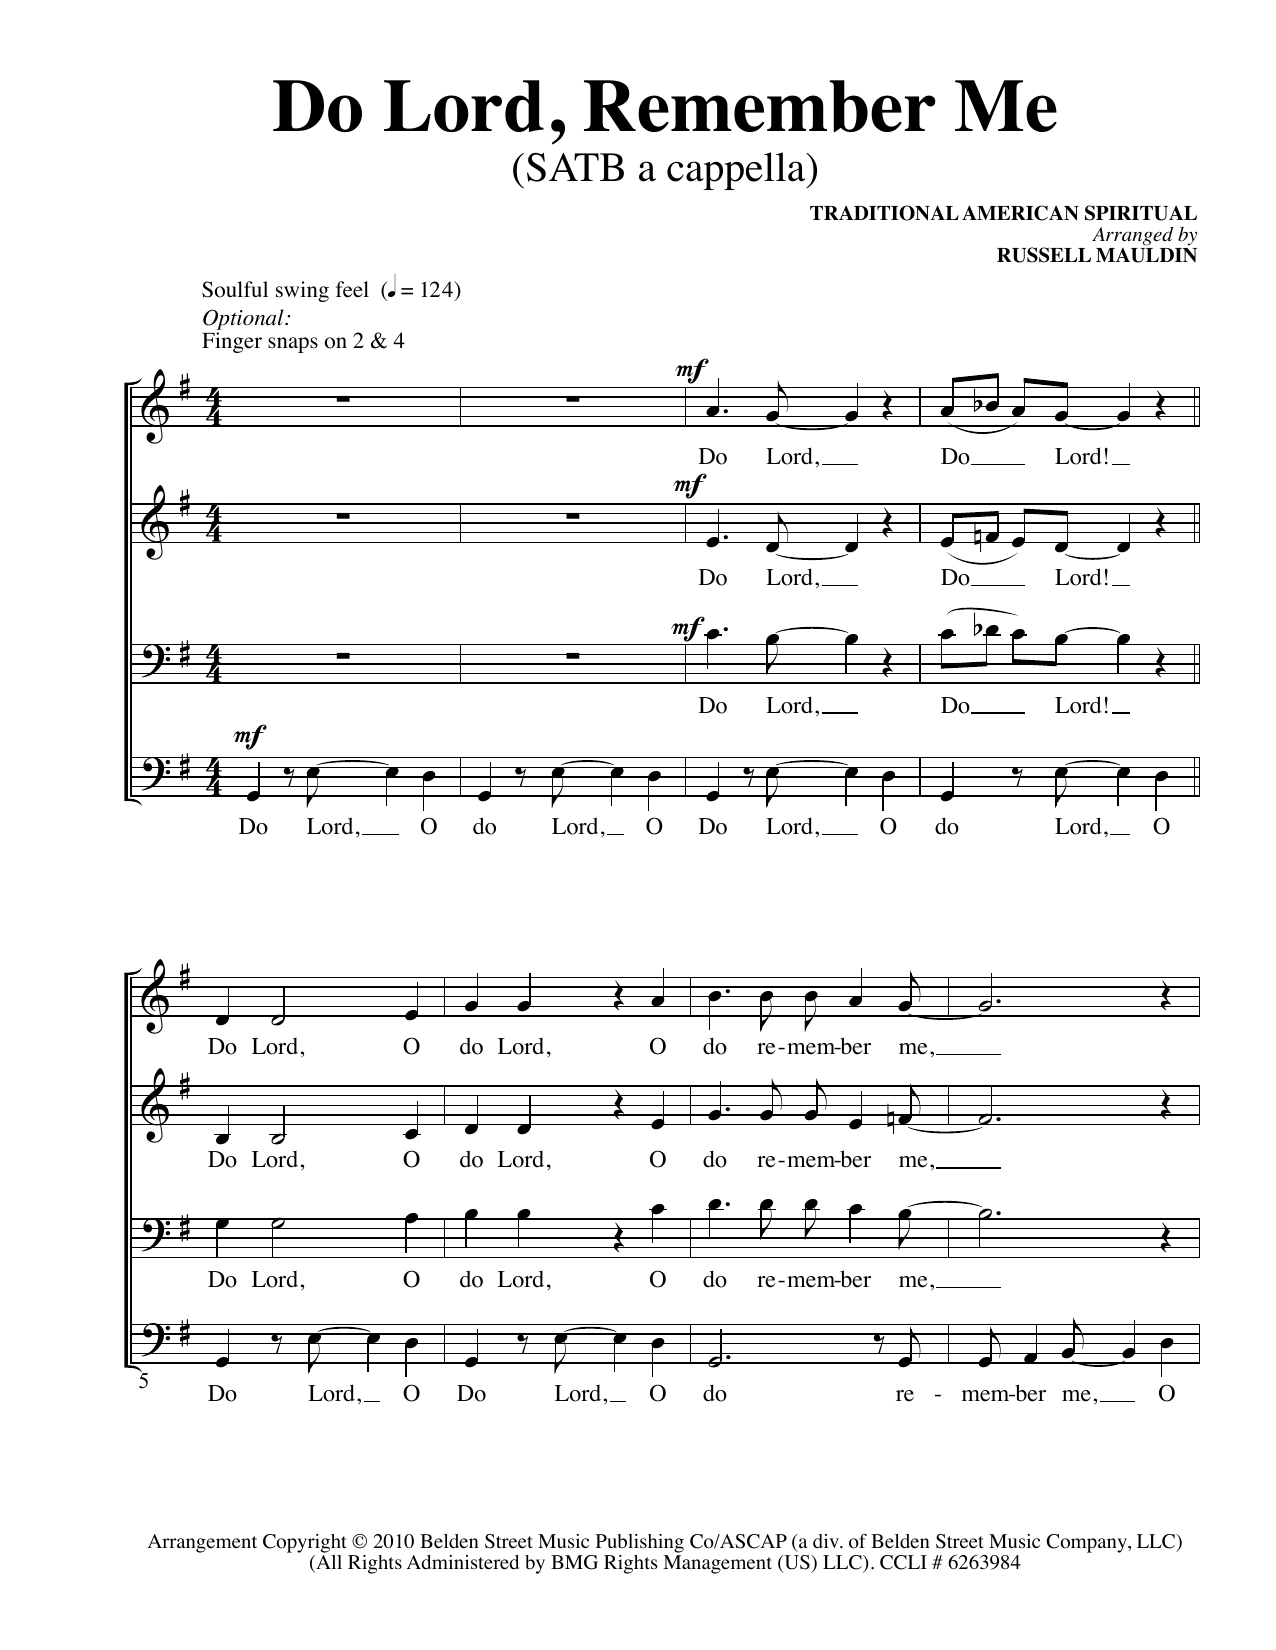 Do Lord, Remember Me (Arr. Russell Mauldin) Sheet Music